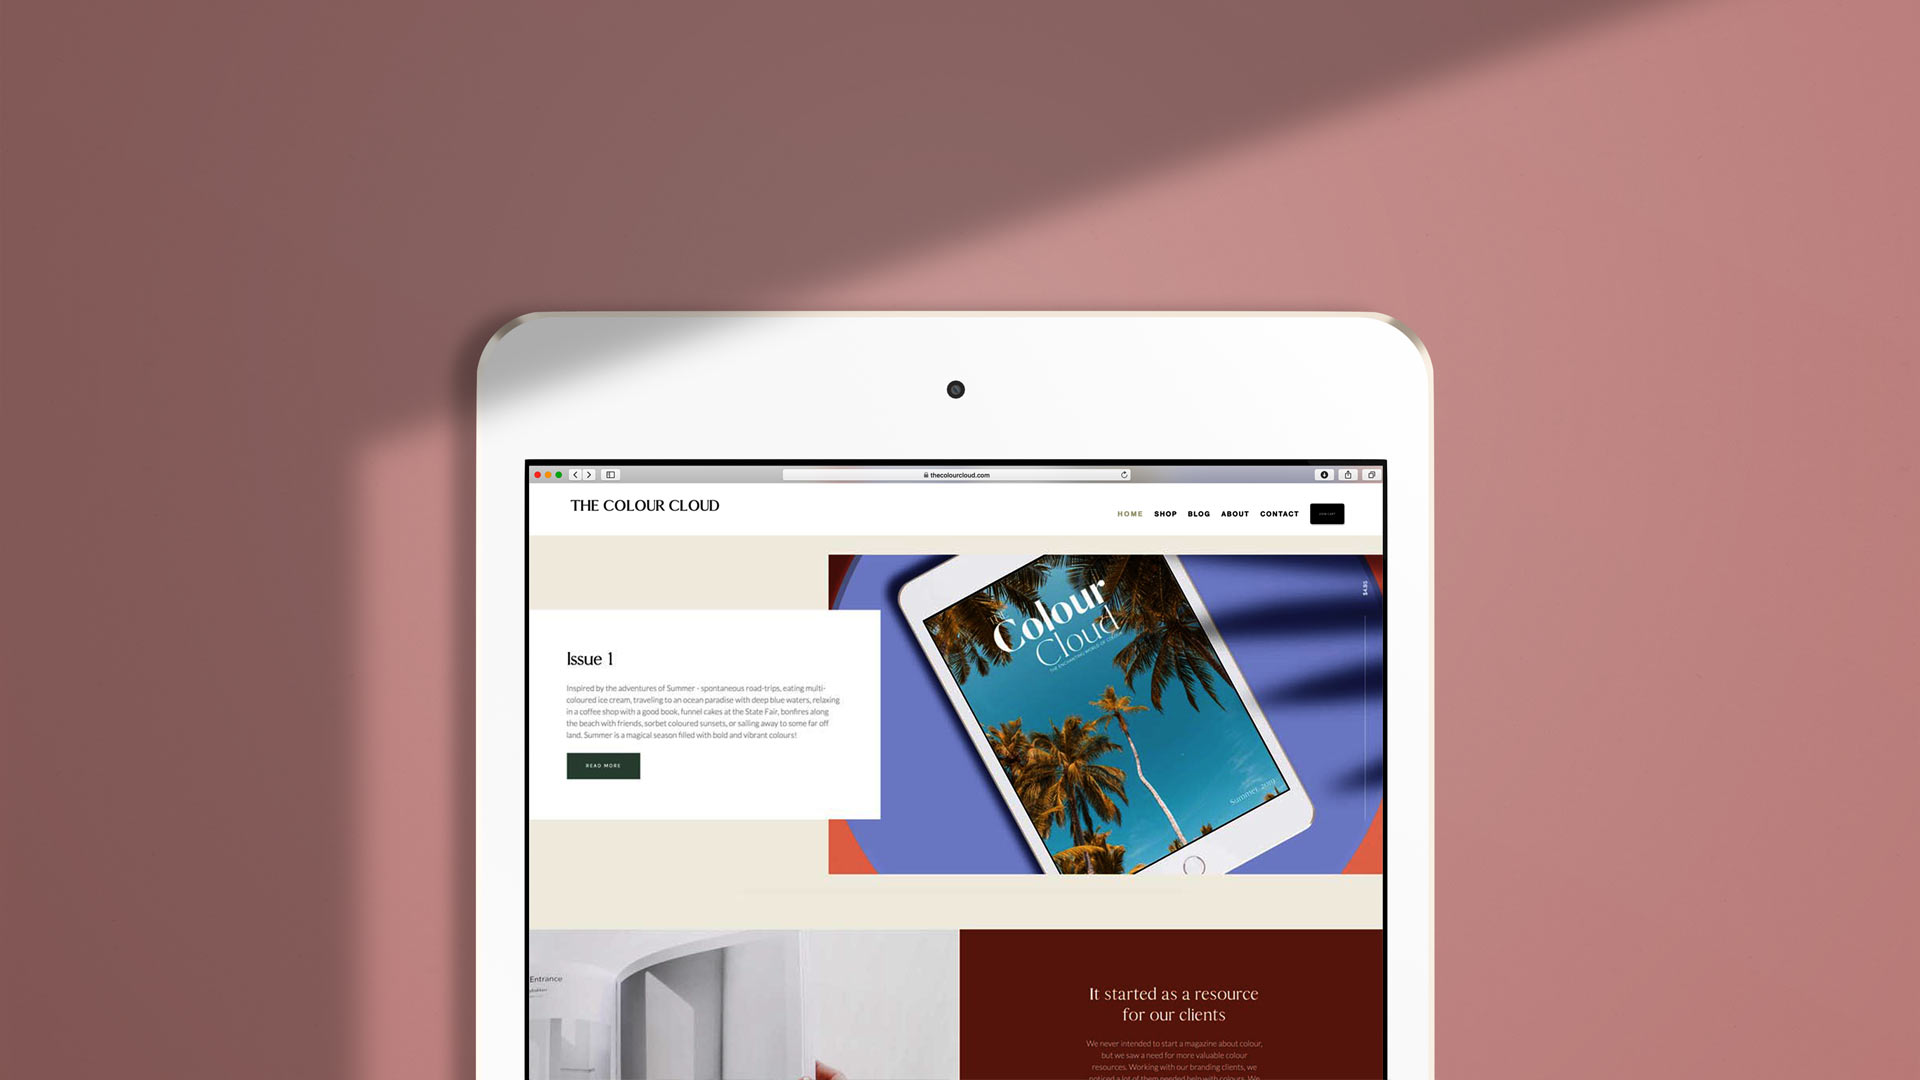 The Colour Cloud is a Digital Magazine dedicated to the power of color on our culture.